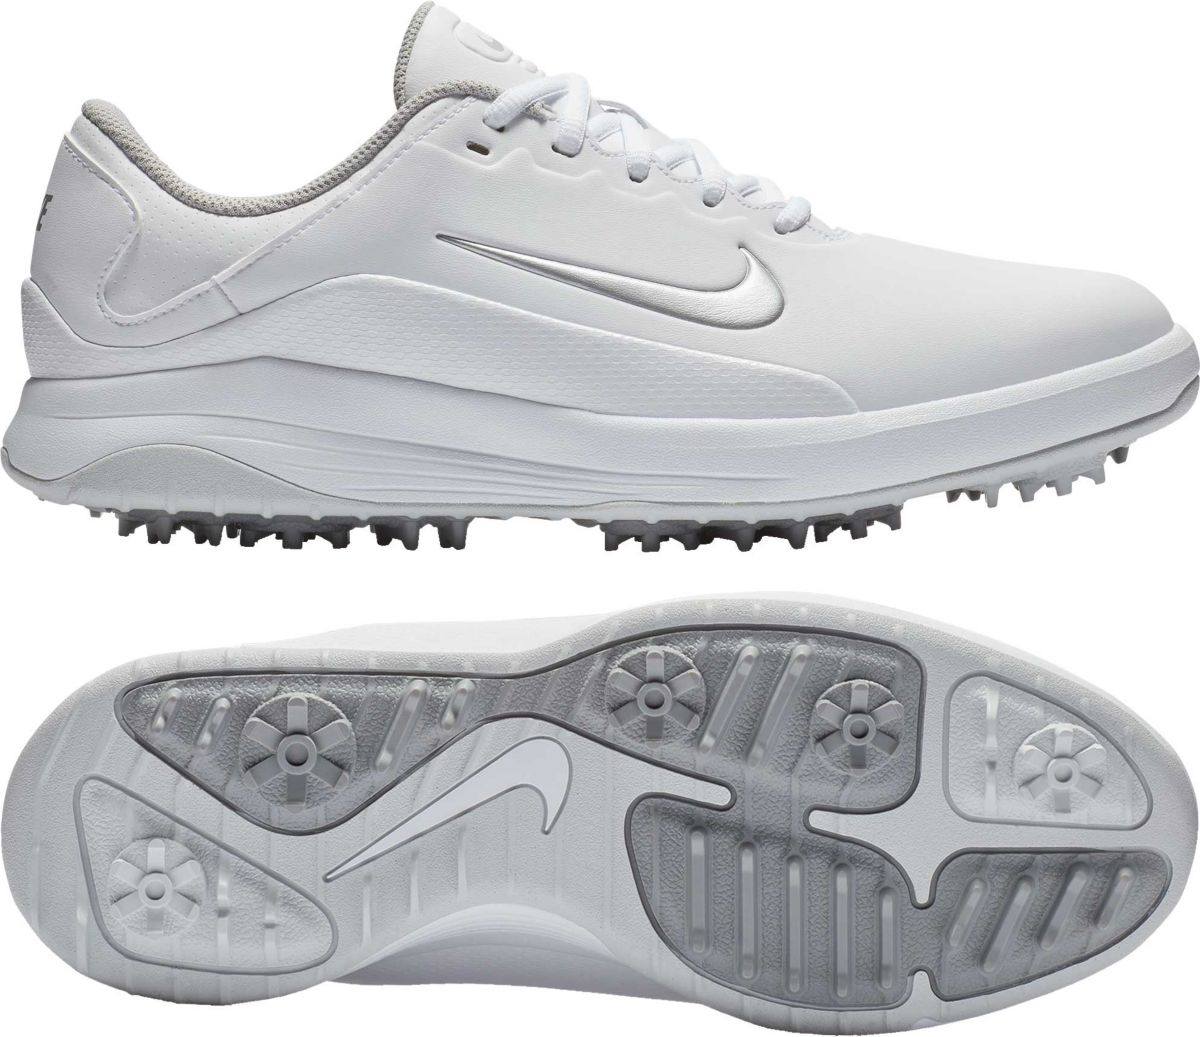 Nike Vapor golf shoes — GolfWRX